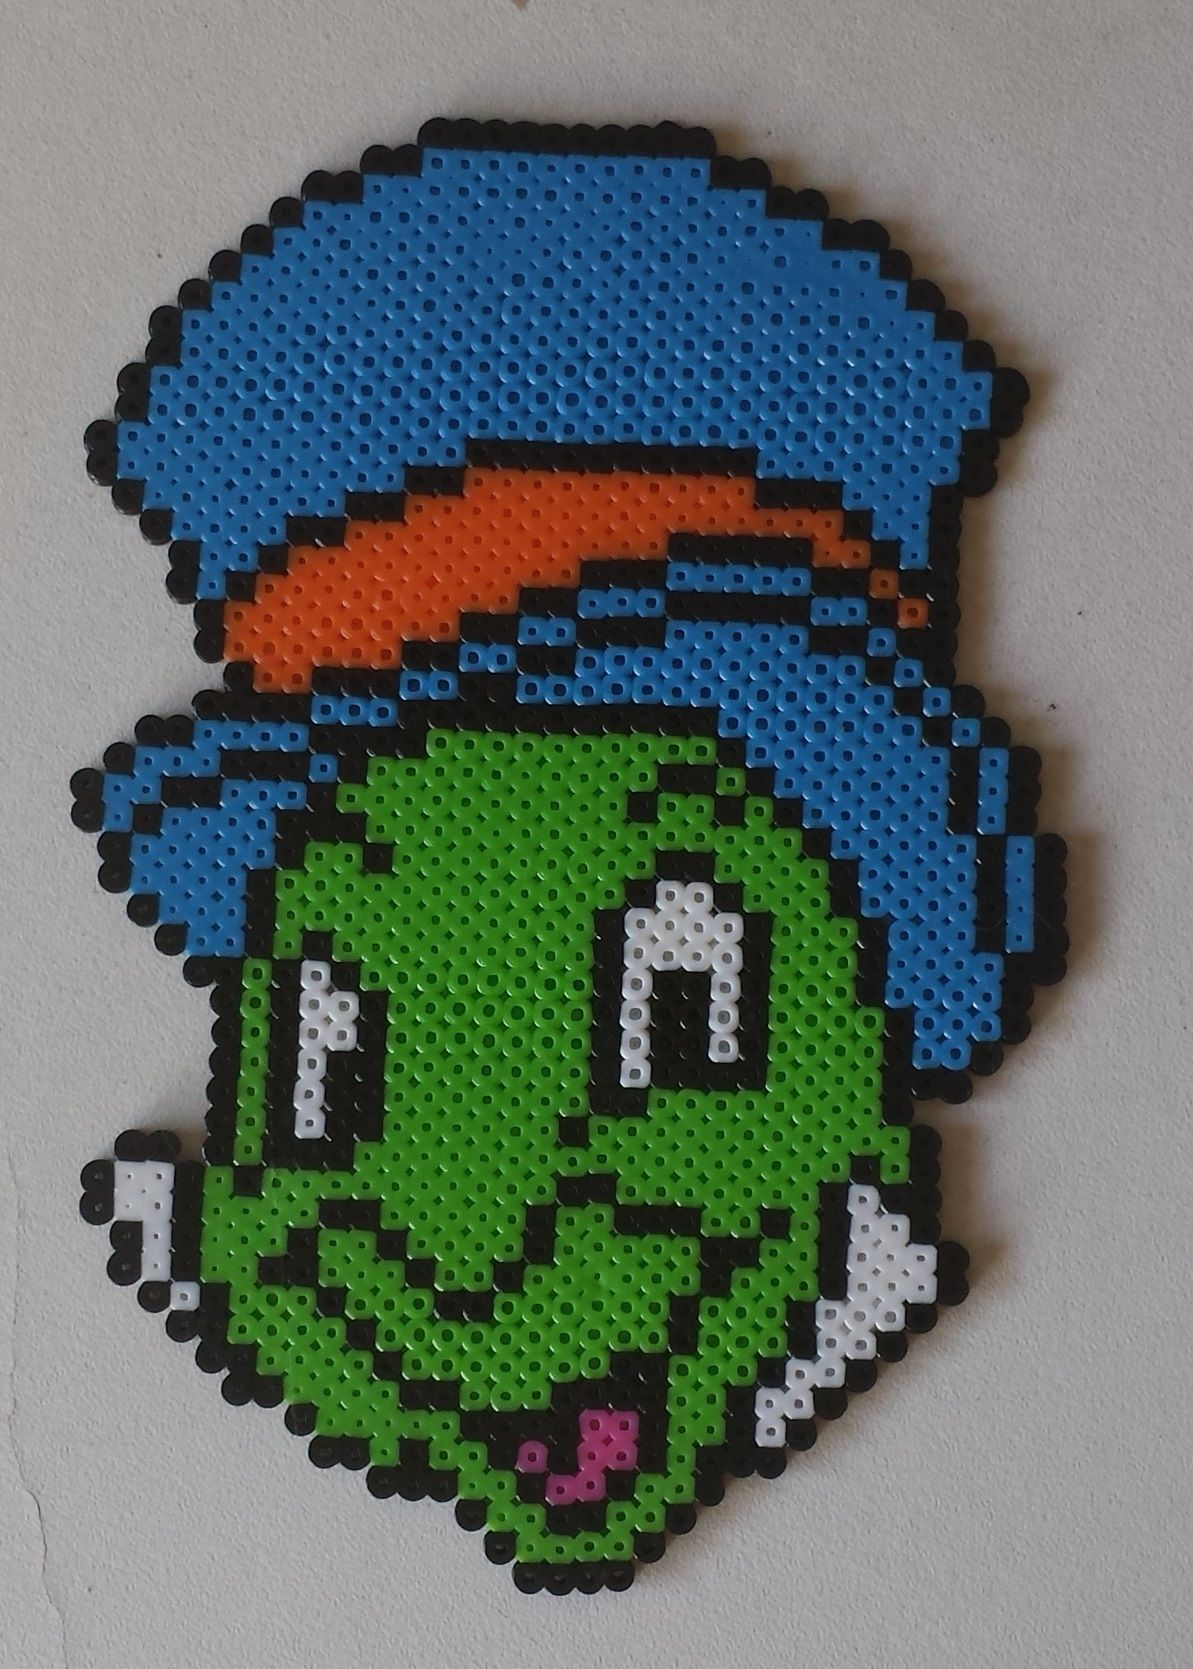 Week 18, Day 126, Movie, Jiminy Cricket. Done in mini beads. 365 Day Perler Bead Challenge.